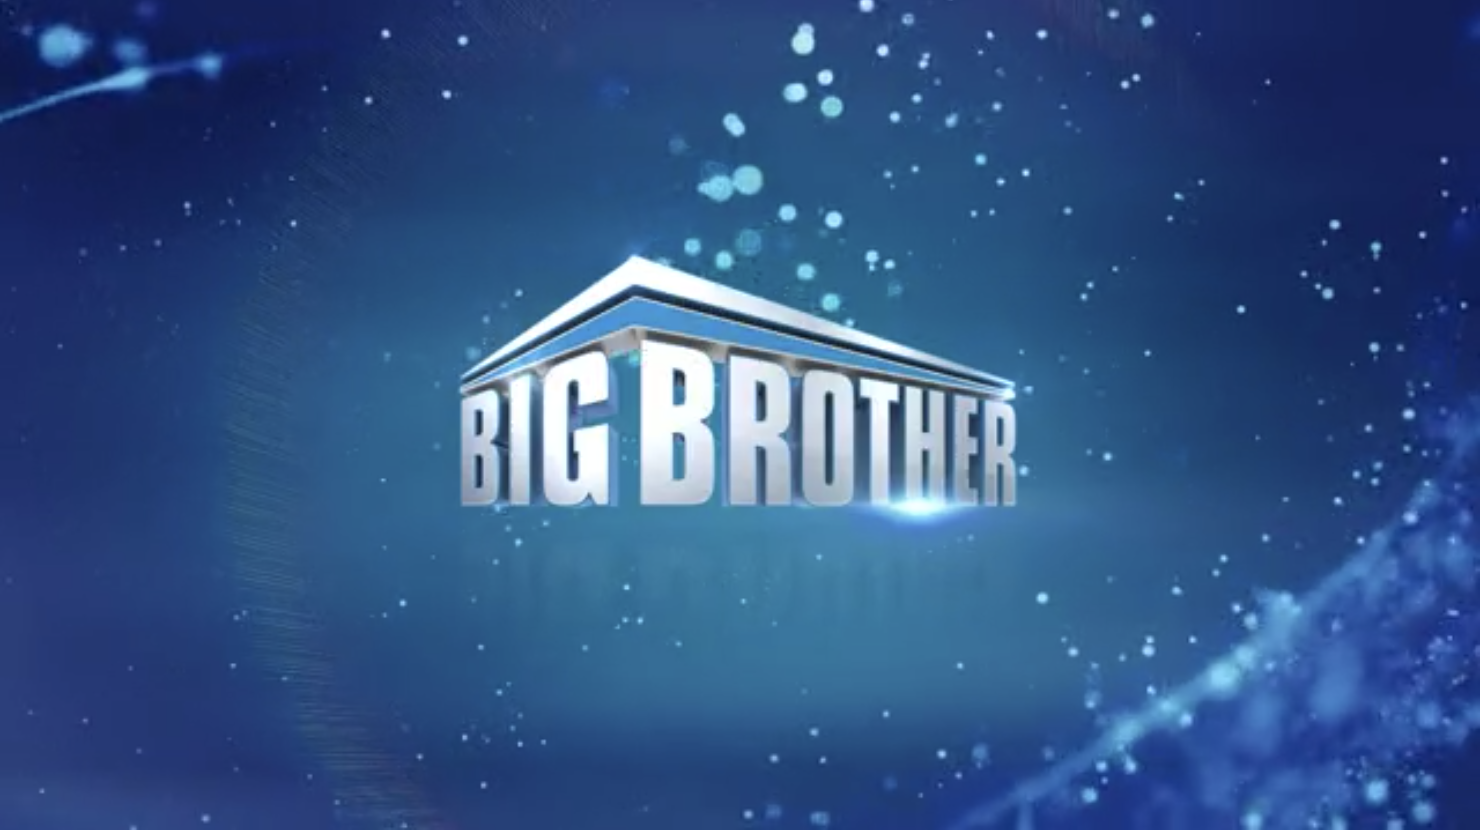 Big Brother 22 Cast Reveal Meet The New Houseguests!